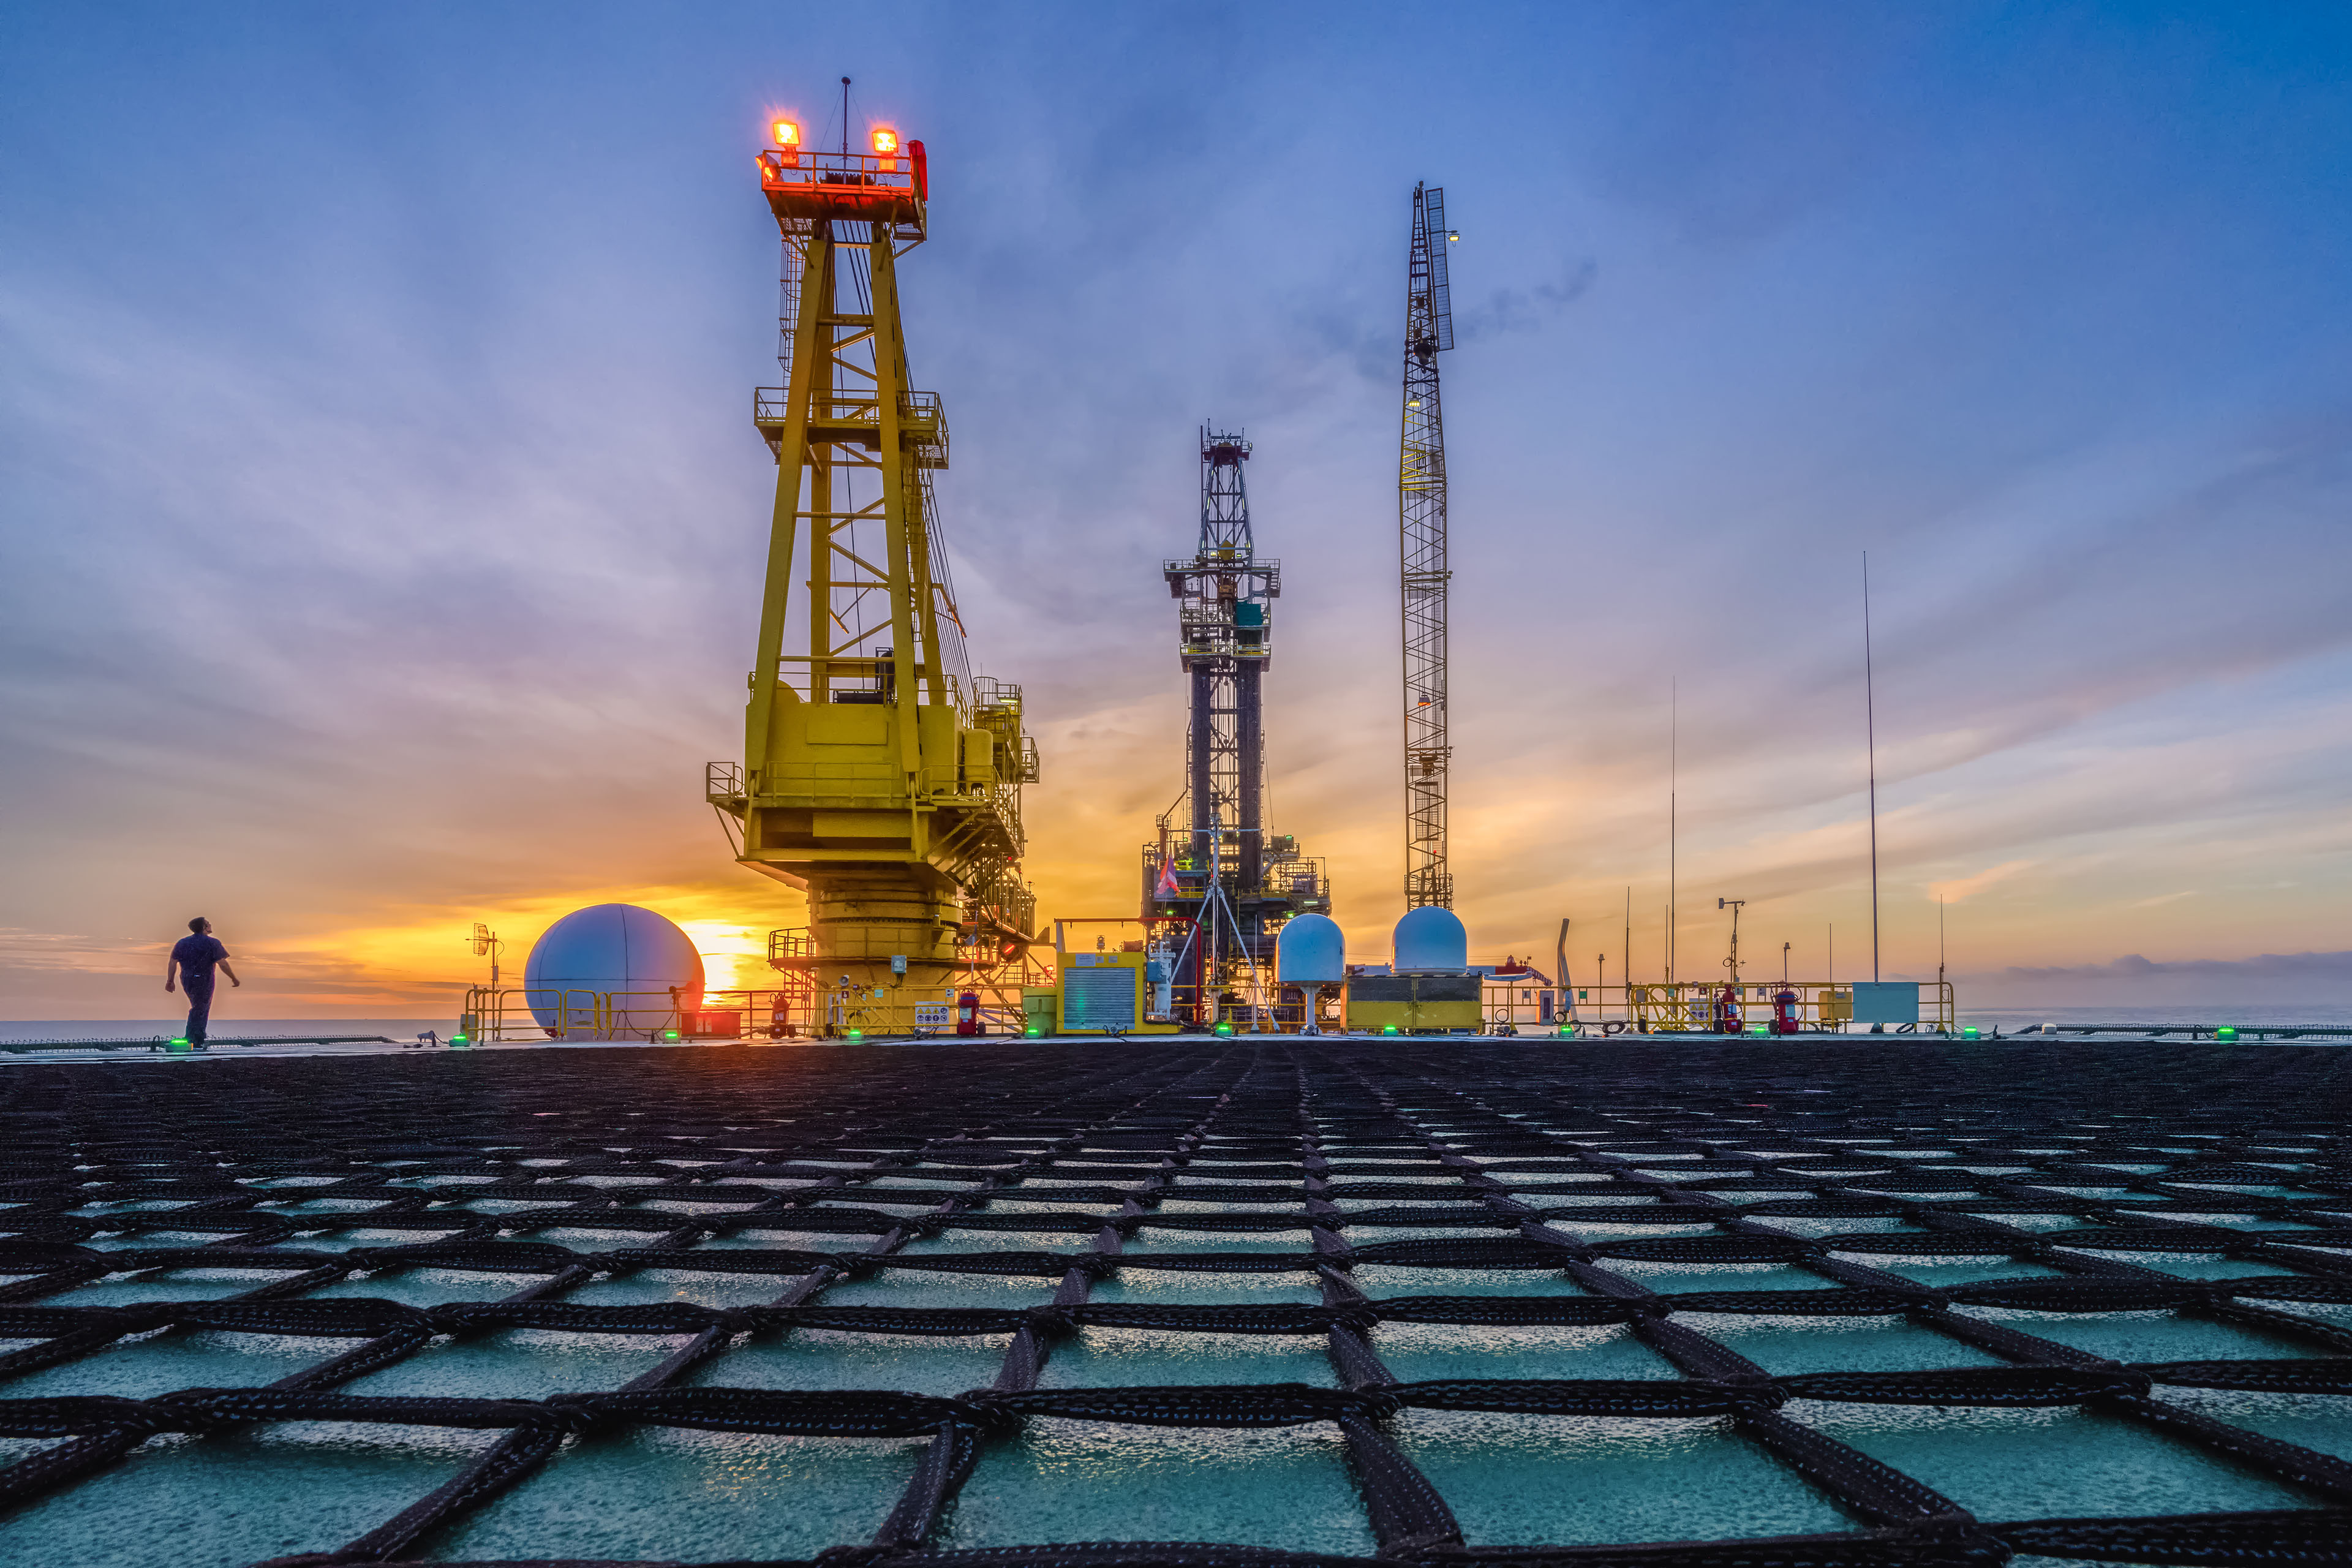 How Q3 2019 challenged oil and gas companies | EY - Global